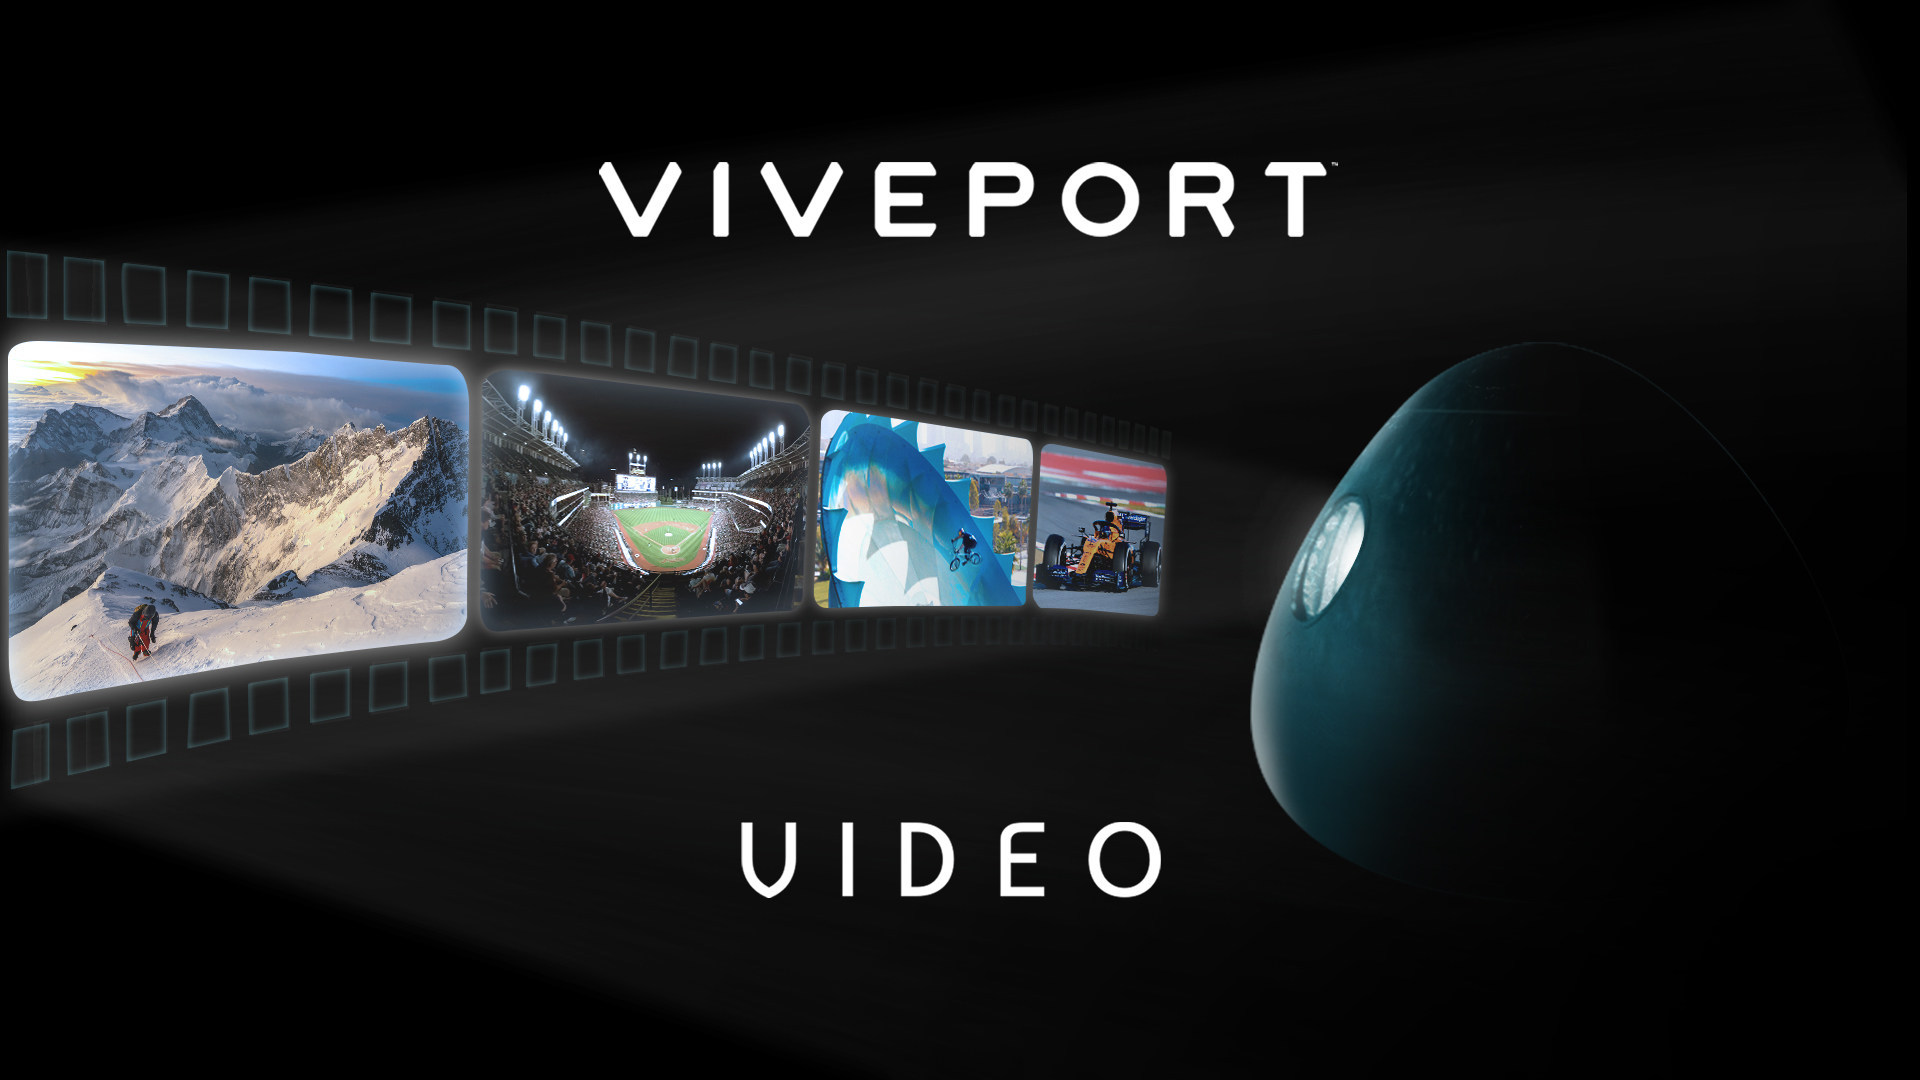 Celebrate Vive Day with Upgraded Viveport Video and Free Goodies